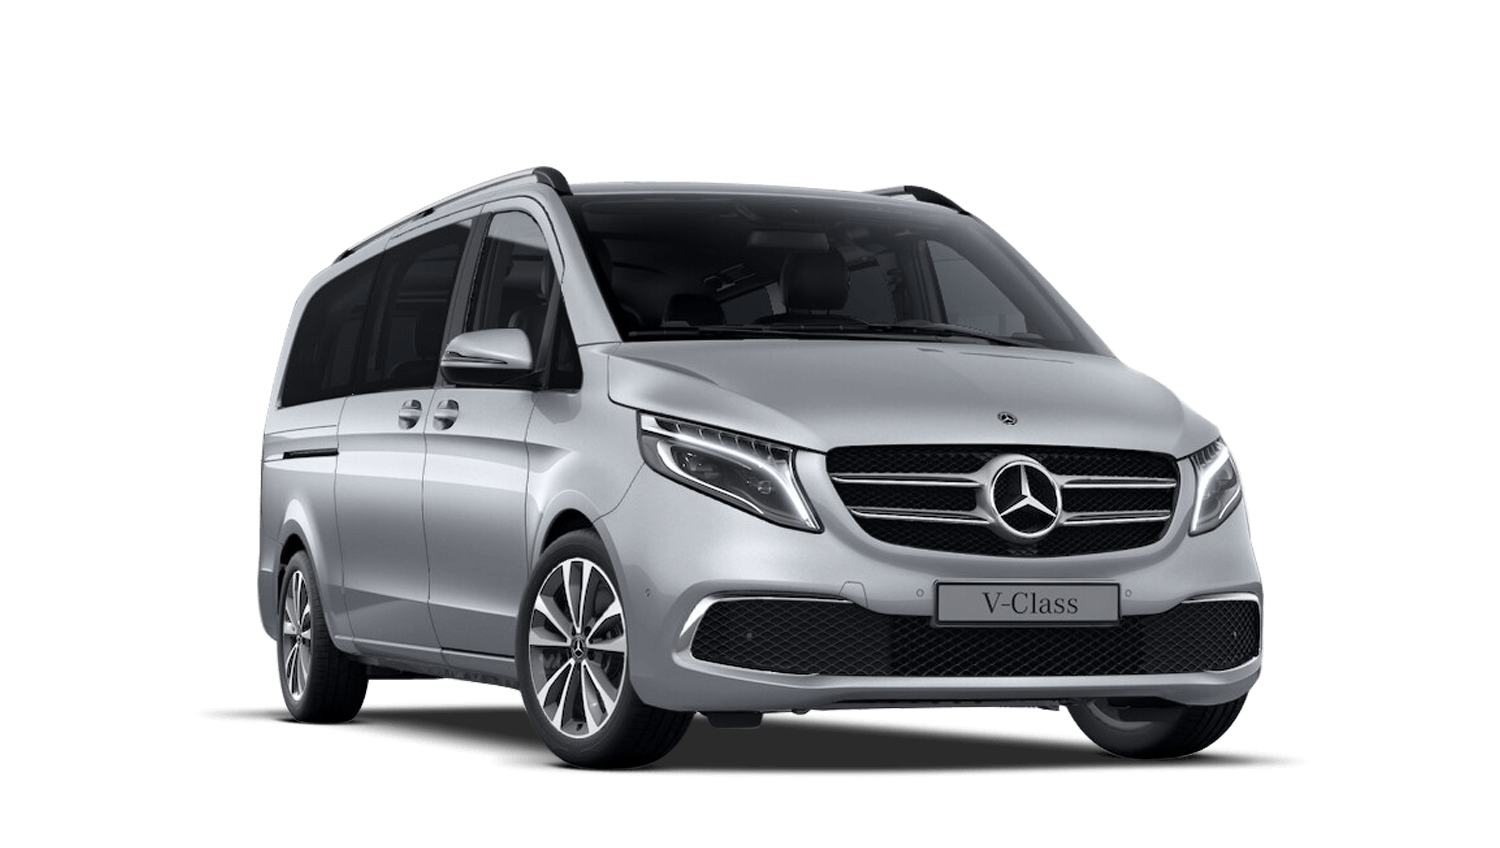 Mercedes Benz V-Class Sport Marco Polo Horizon